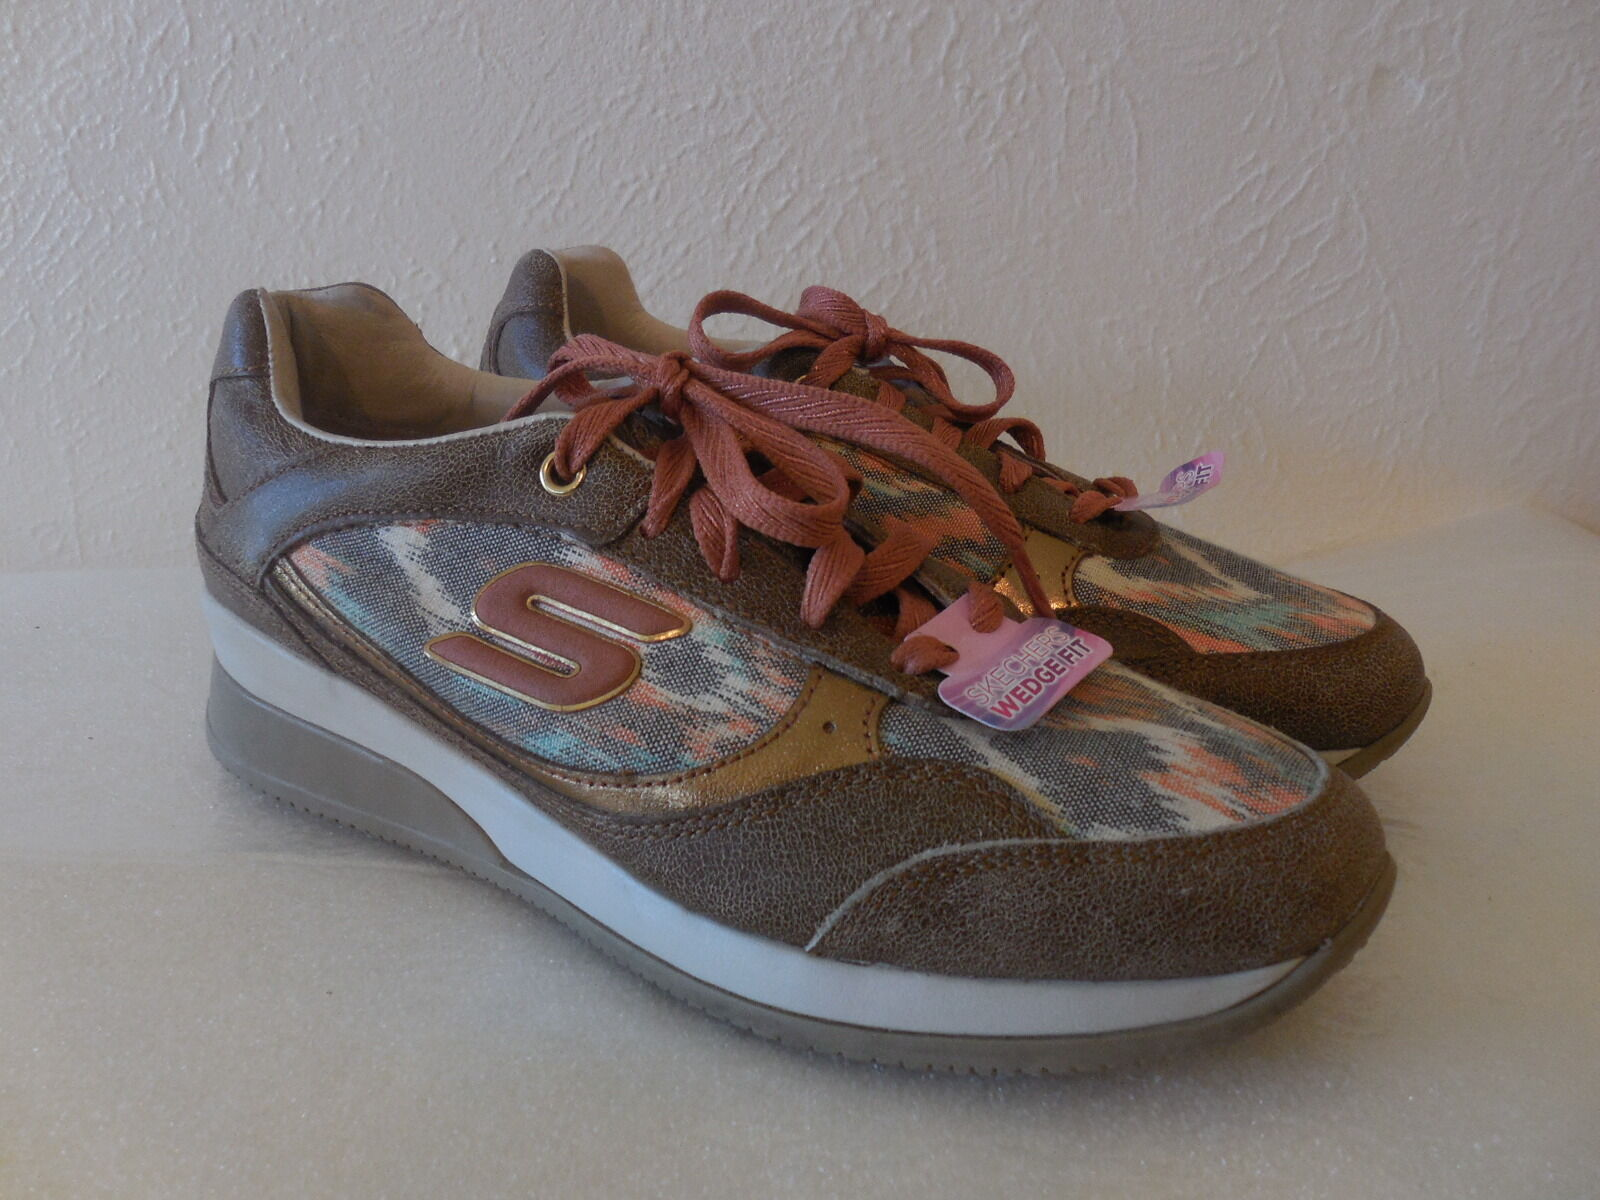 New Sz. 6 Skechers-BROWN-Women-Shoes - WEDGE-FIT-VITA-VIVERE--Sneaker